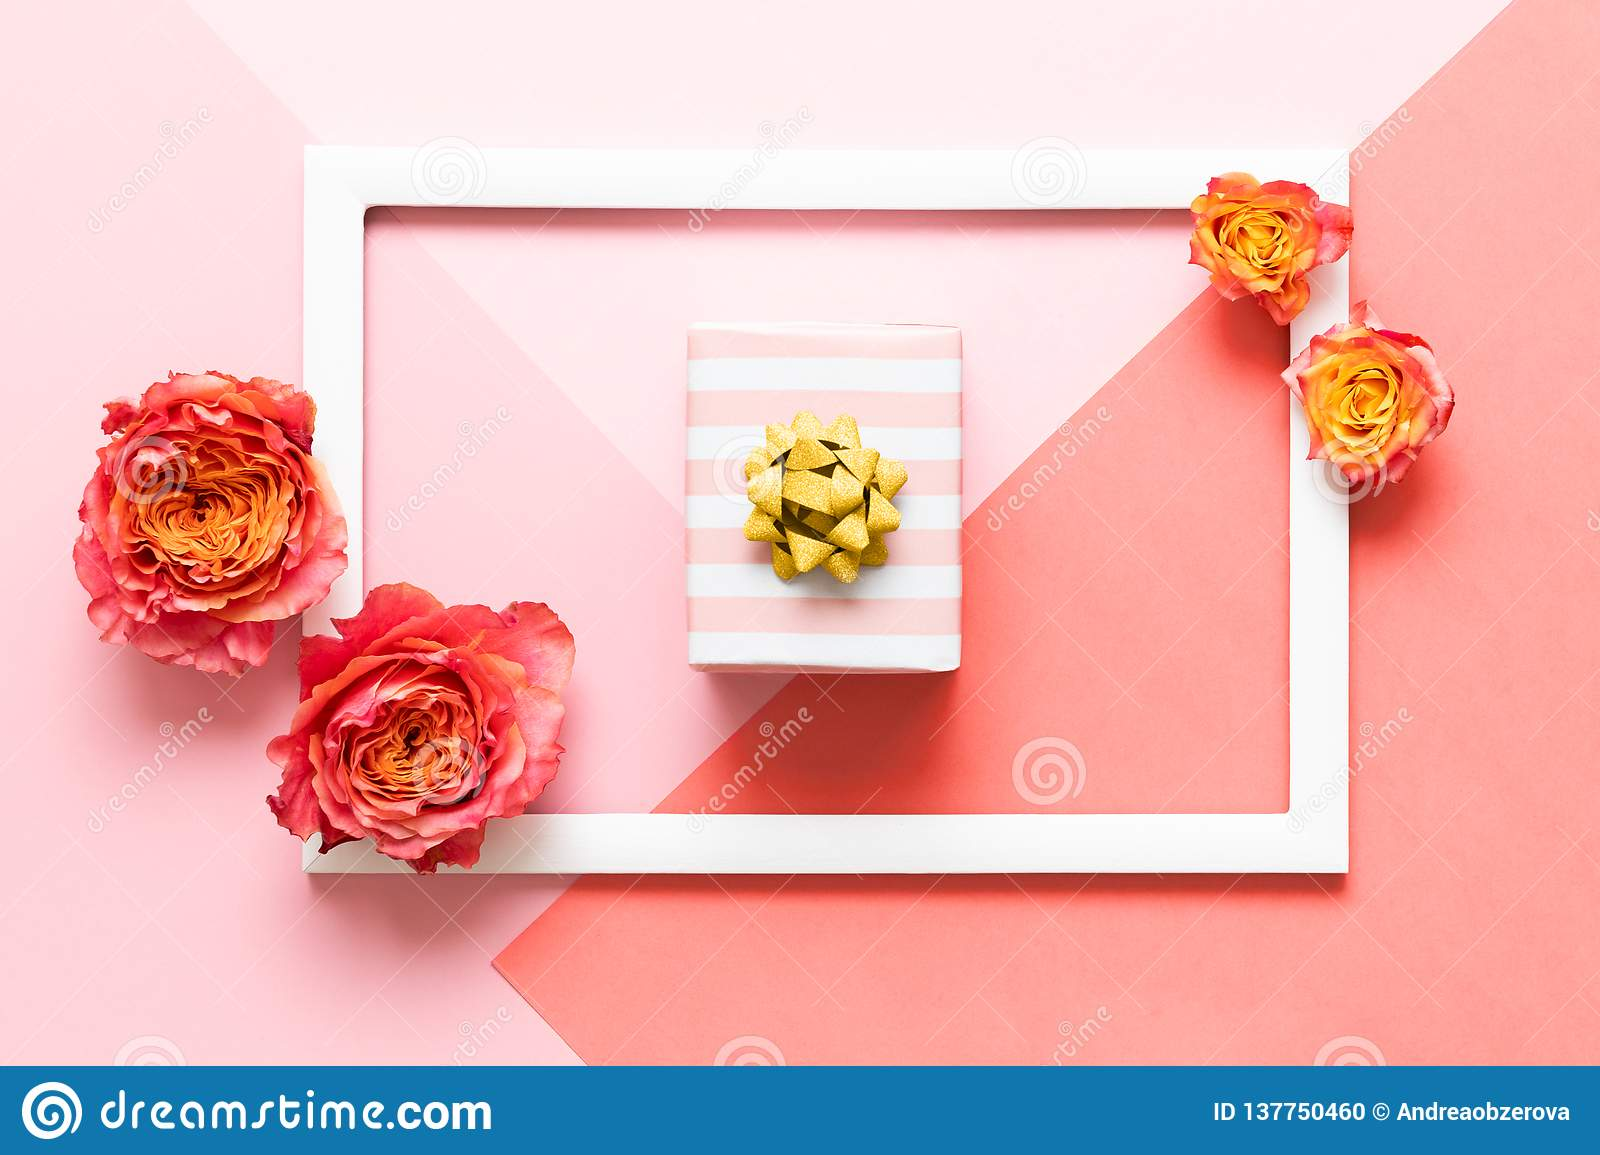 Happy Mothers Day, Womens Day, Valentines Day or Birthday Pink Pastel Colored Background. Flat lay mock up greeting card.